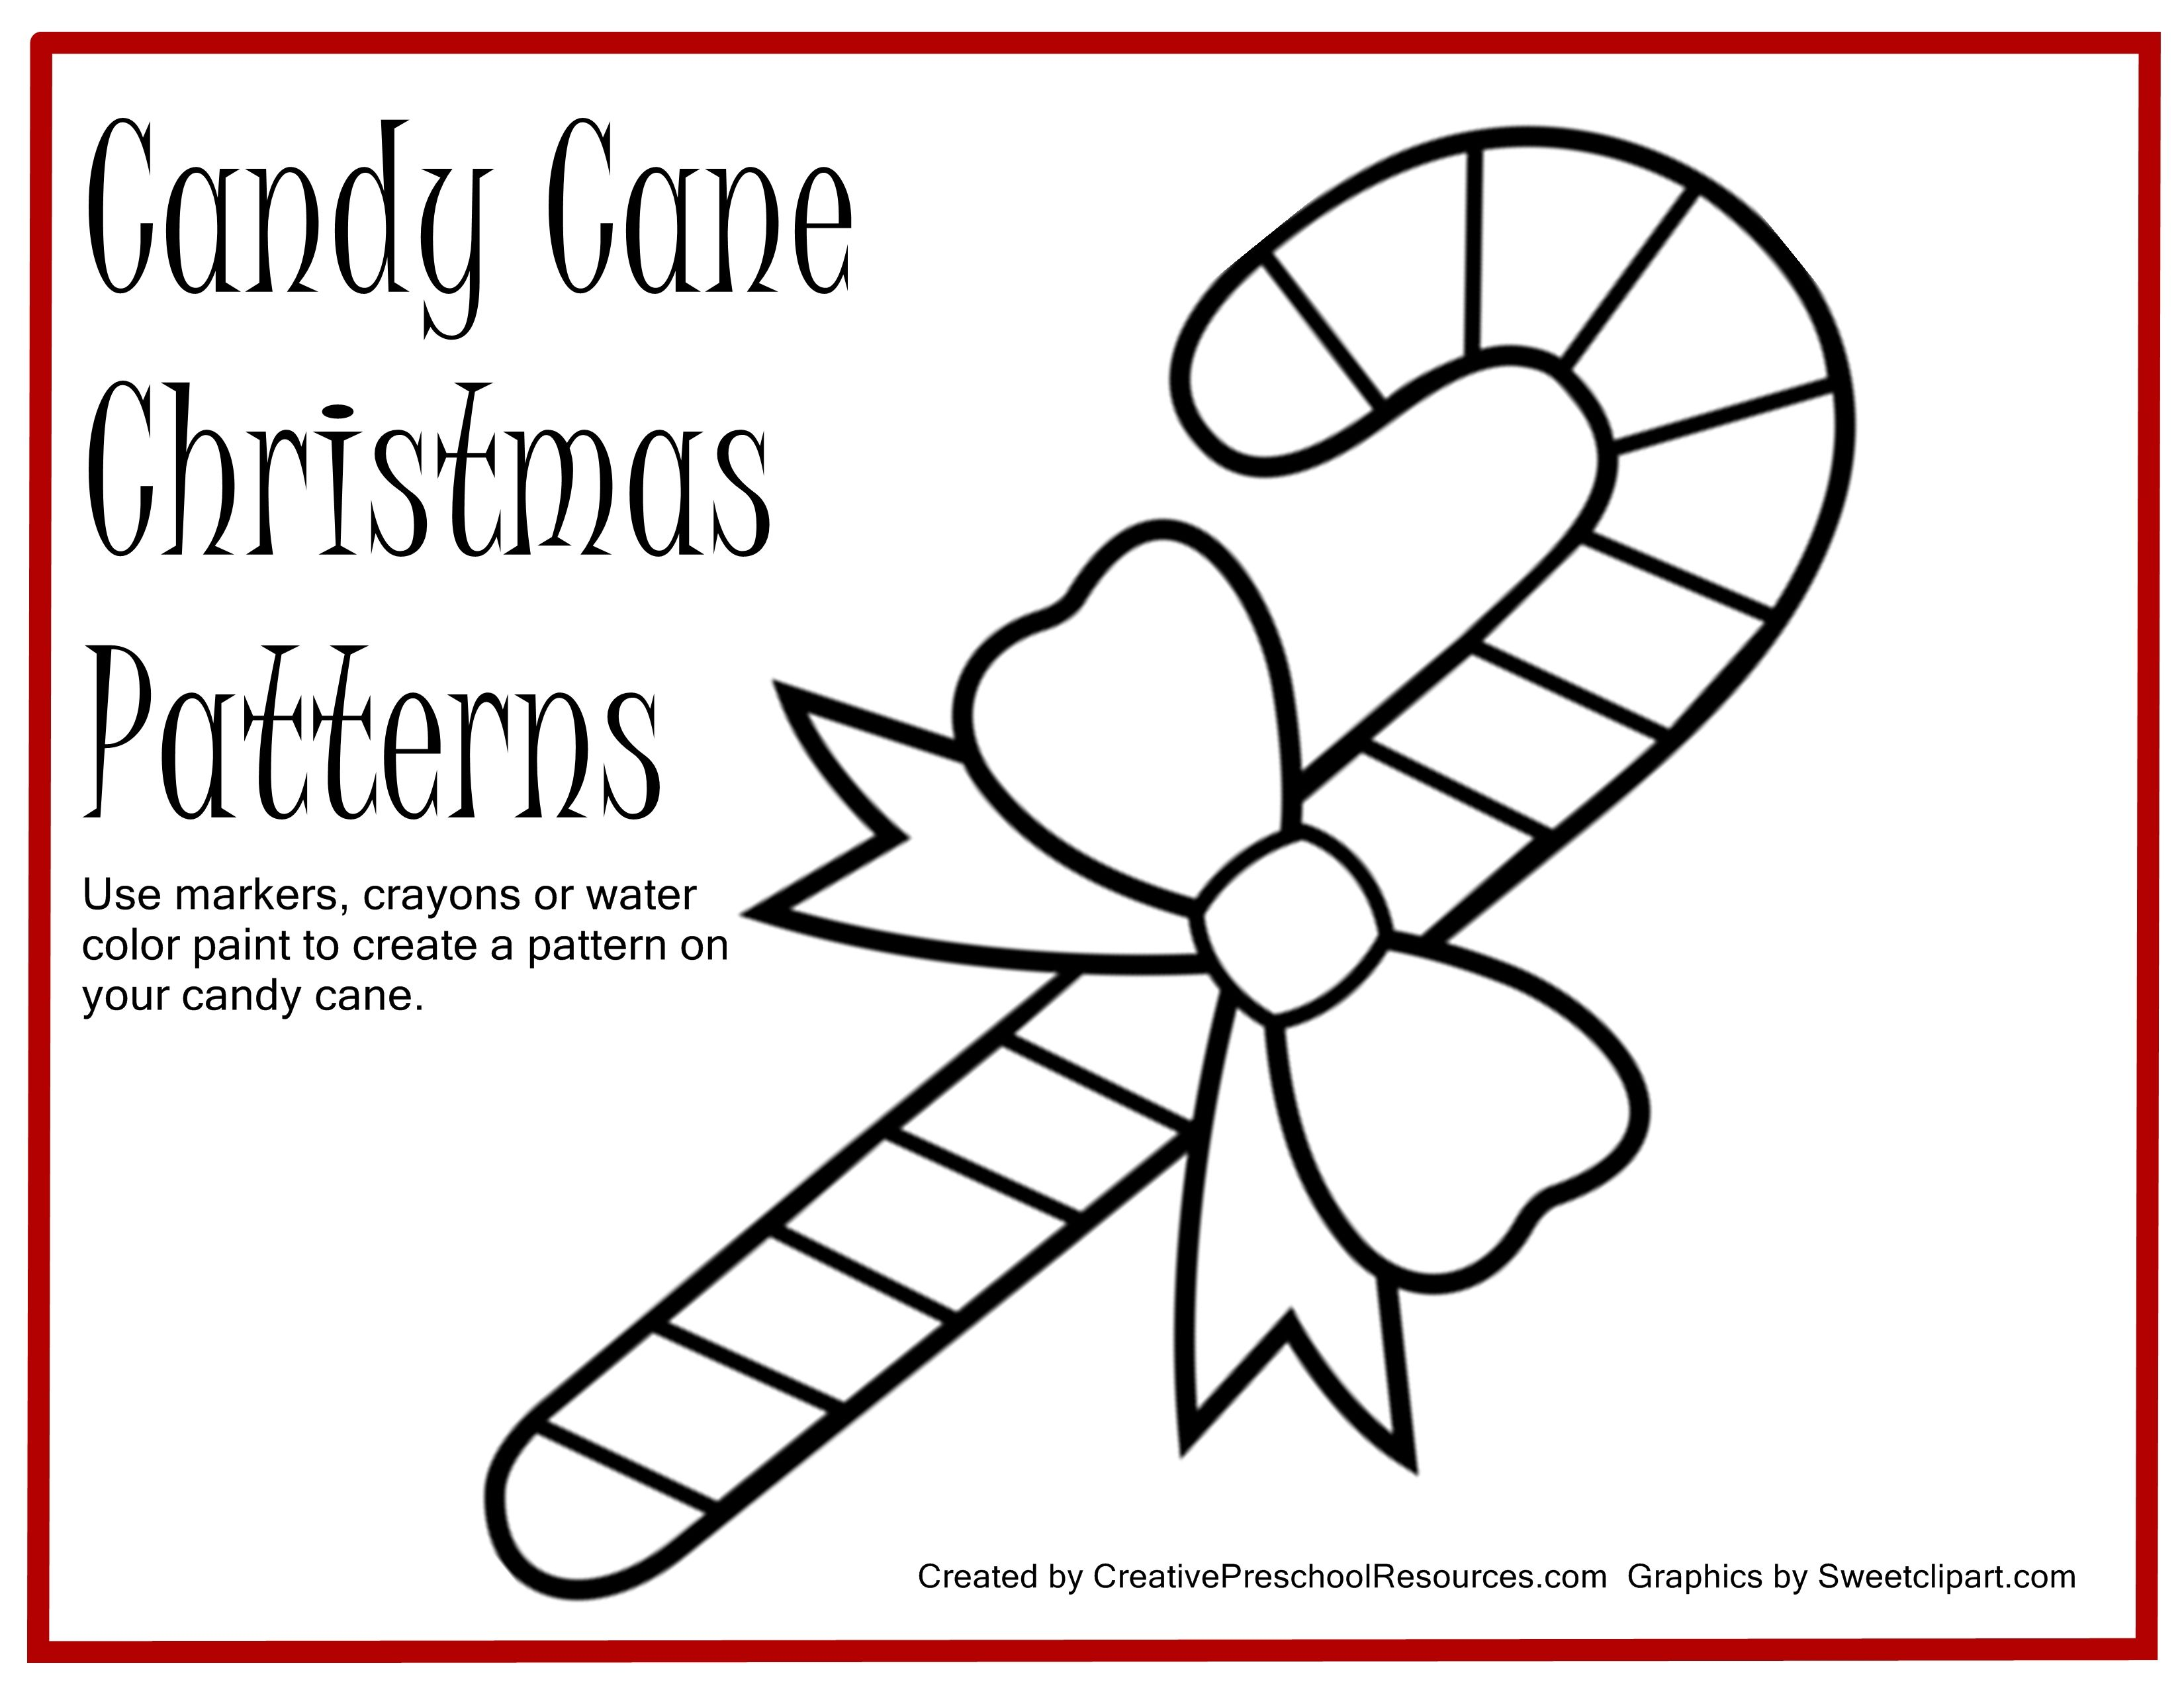 Creative Preschool Resources Free Printable For Painting